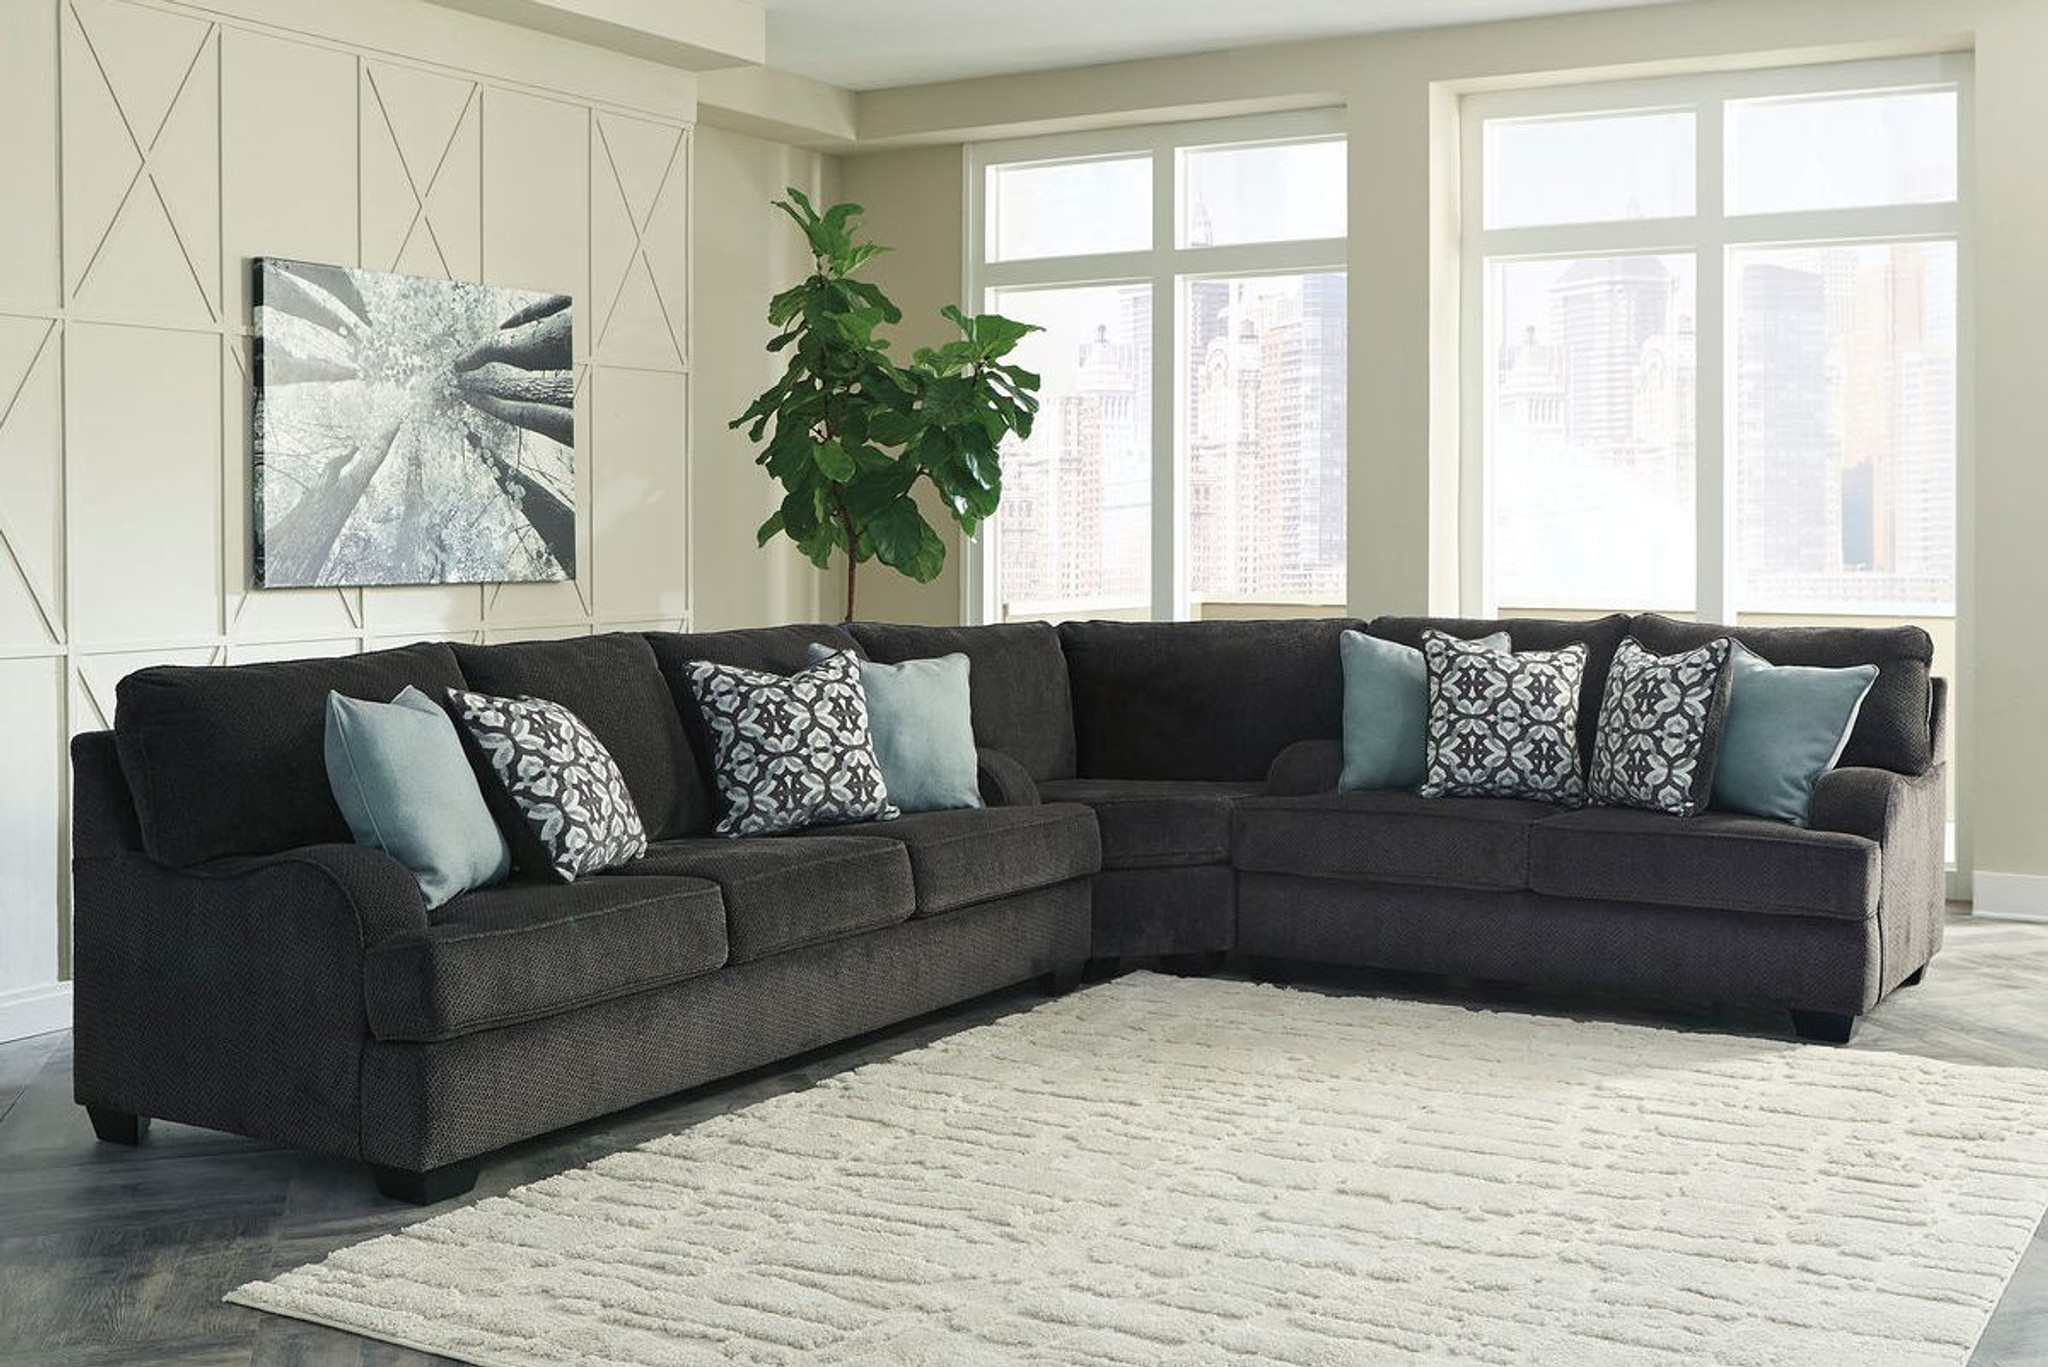 - 14101-39-77-35 3 PC CHARENTON CHARCOAL QUEEN SLEEPER SECTIONAL